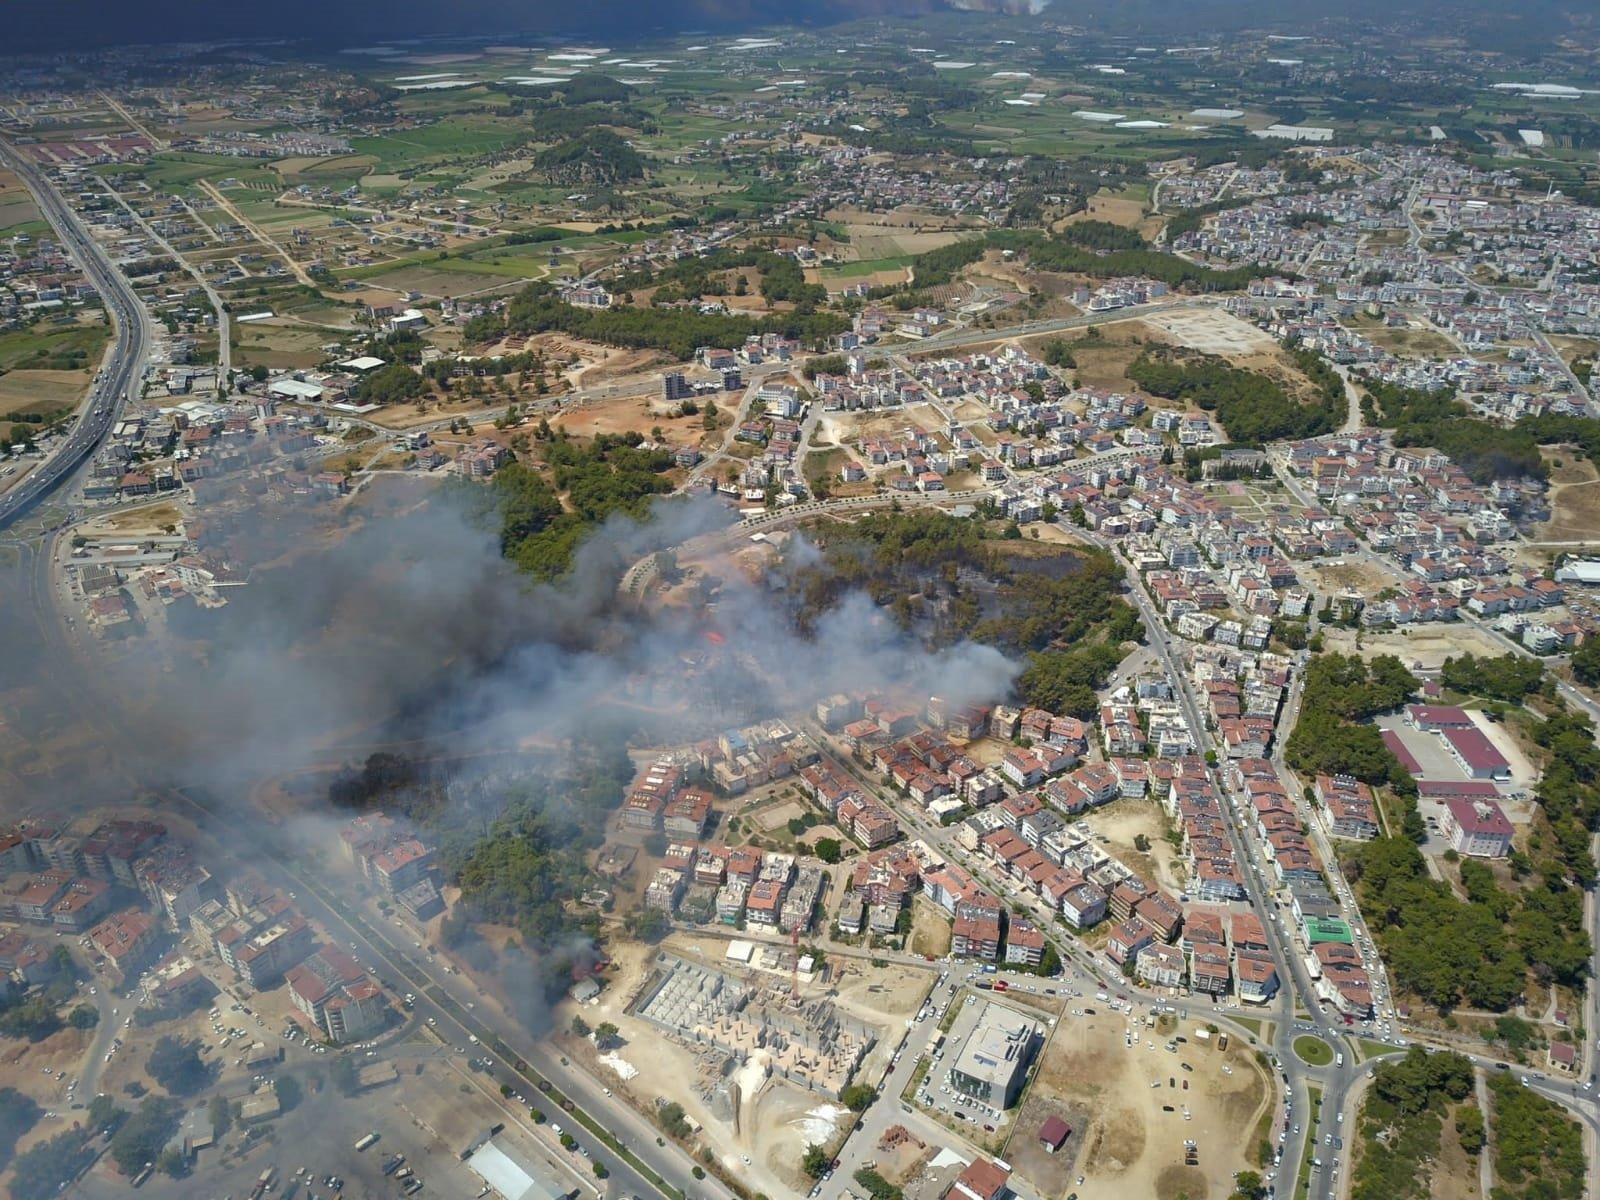 An aerial view of the fire in the early hours of the blaze, in Manavgat district, in Antalya, southern Turkey, July 28, 2021. (DHA PHOTO)